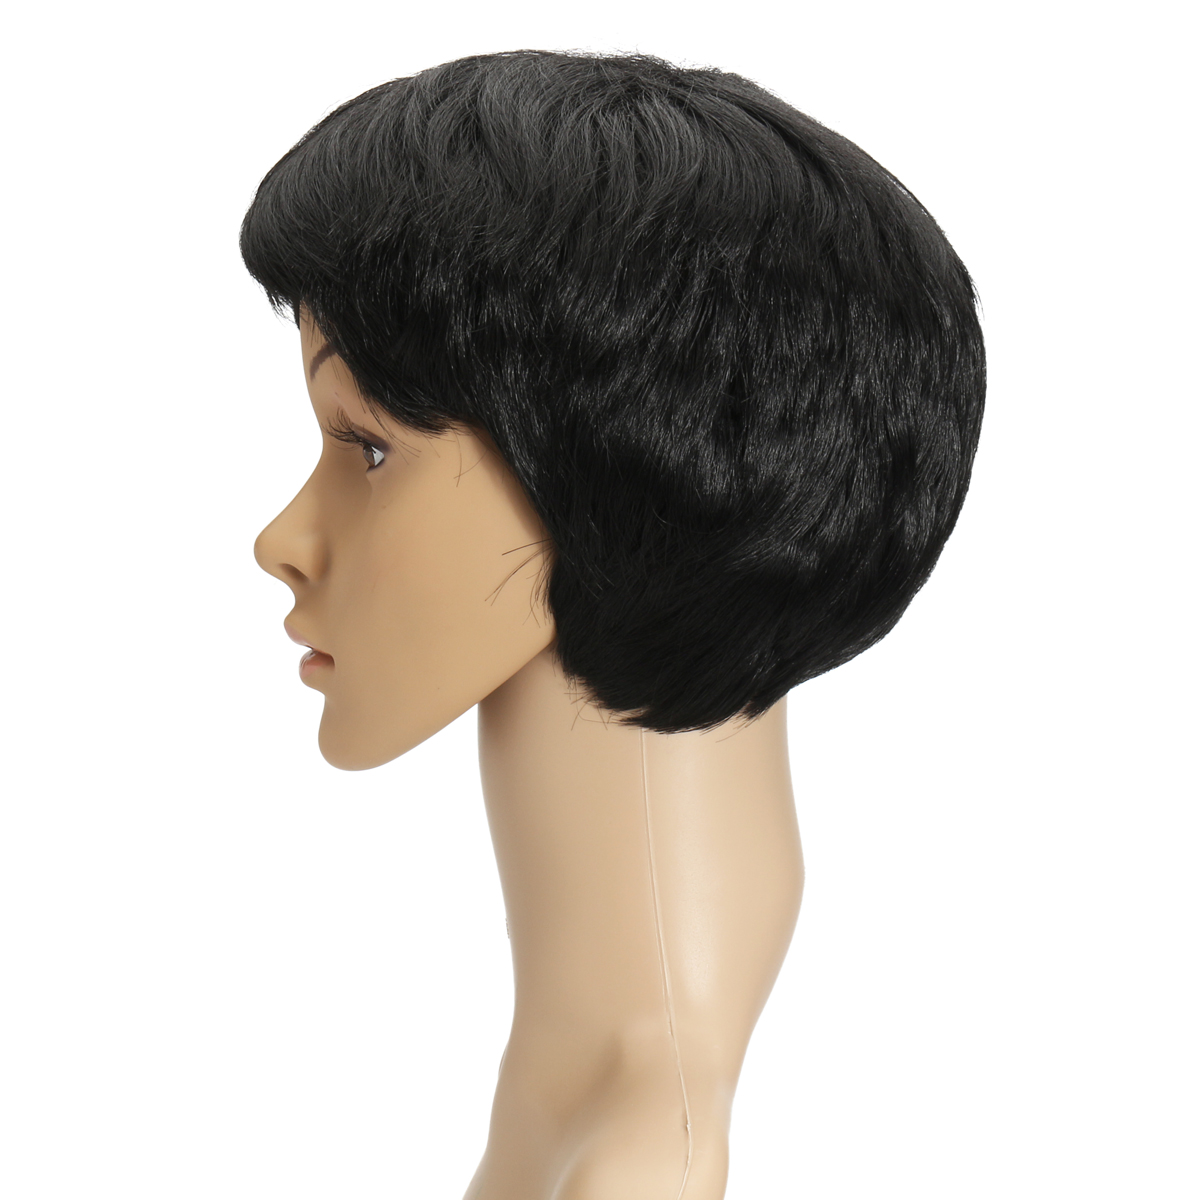 Sexy Short Cut Wavy Black Curly Wig Women Fashion Cosplay Synthetic Full Wigs